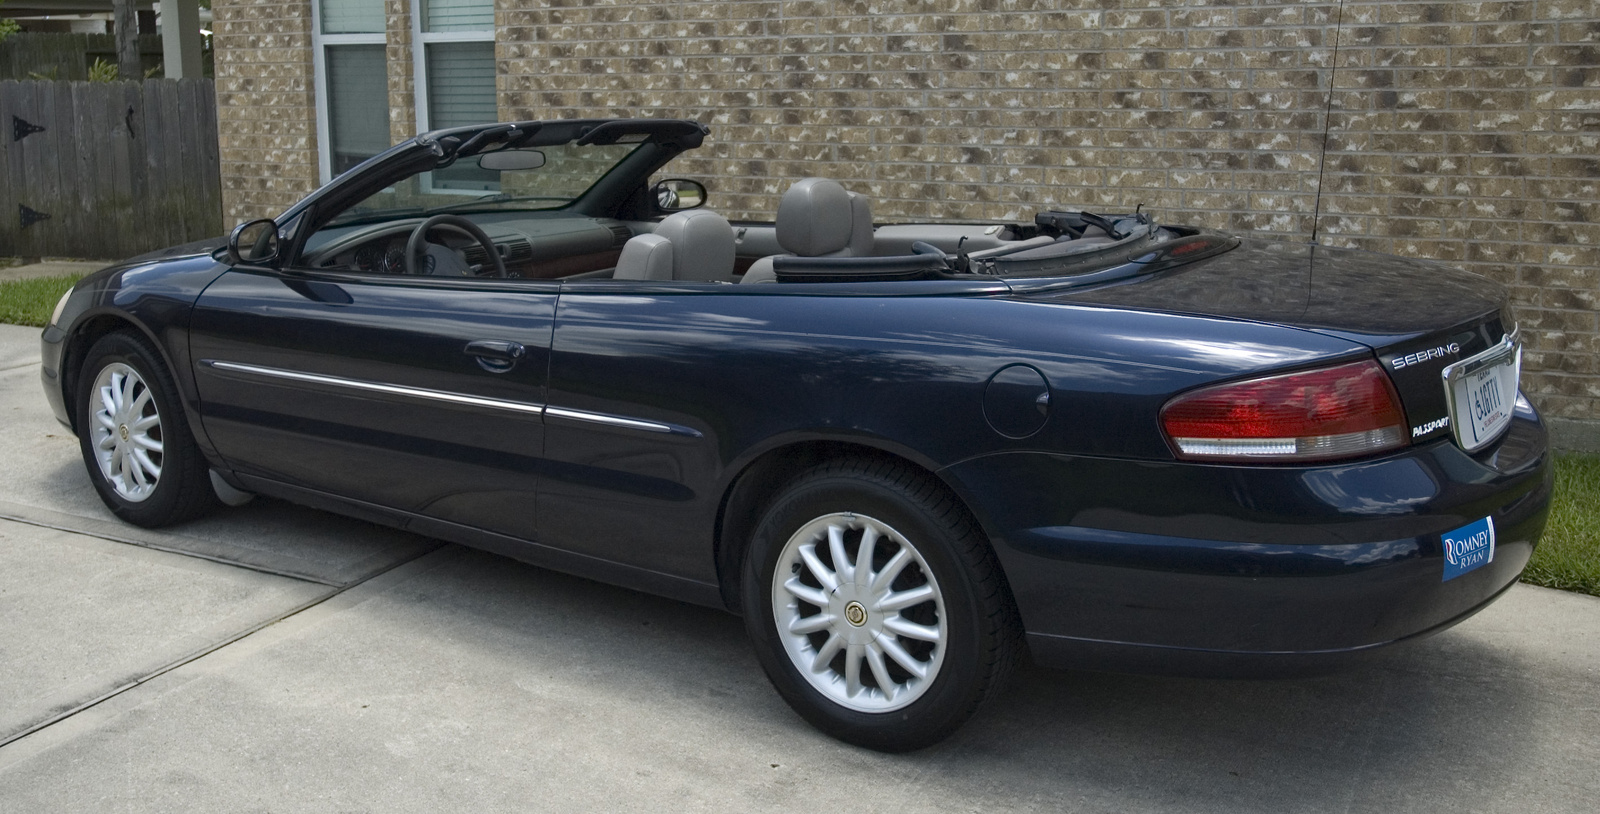 picture of 2002 chrysler sebring lxi convertible exterior. Black Bedroom Furniture Sets. Home Design Ideas